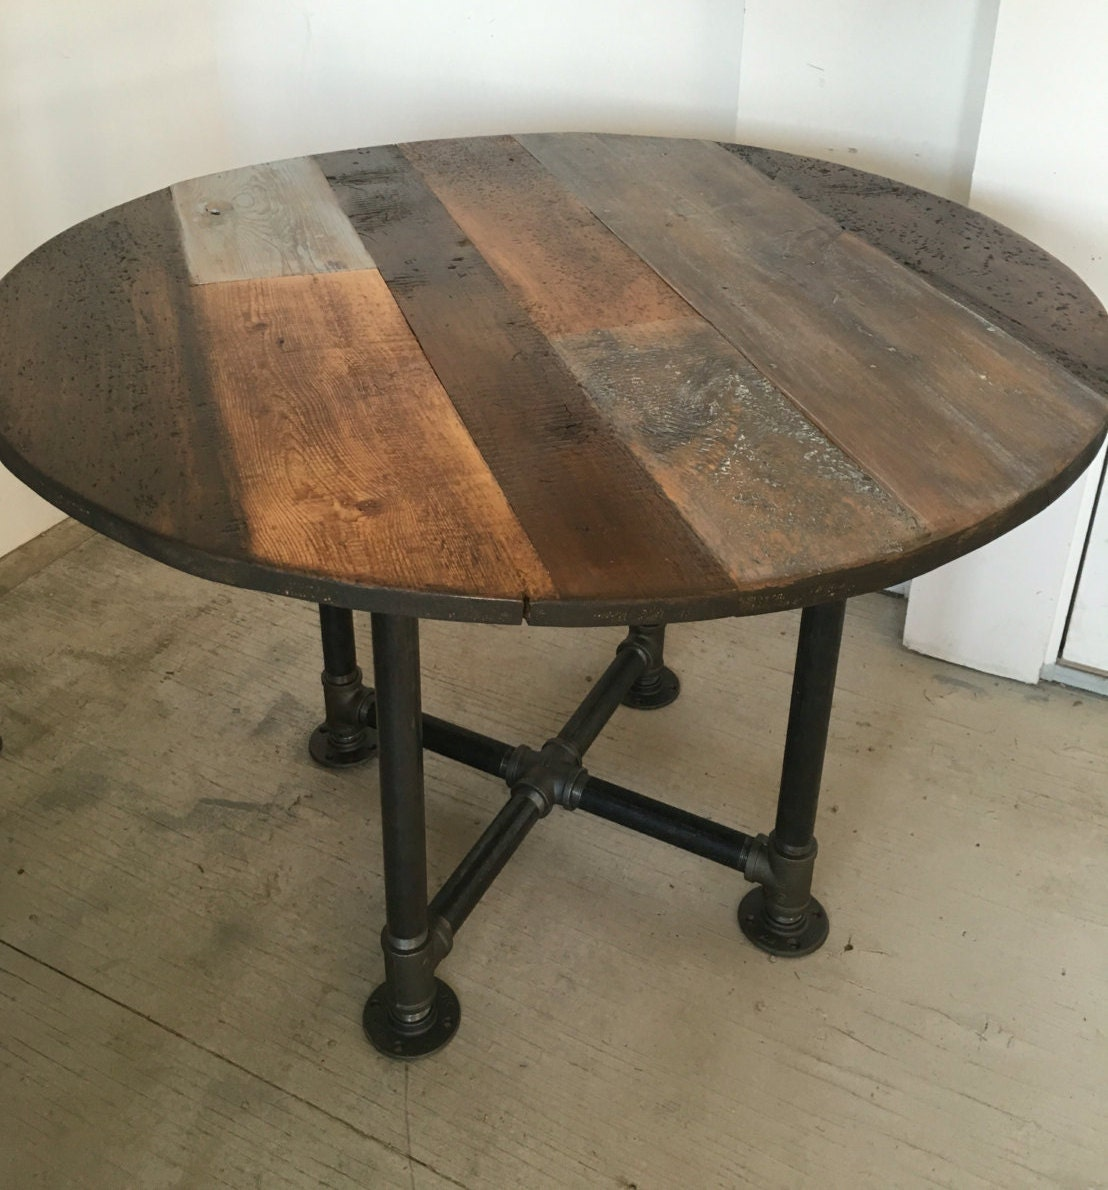 round table dining tablepipe leg base reclaimed wood planks. Black Bedroom Furniture Sets. Home Design Ideas